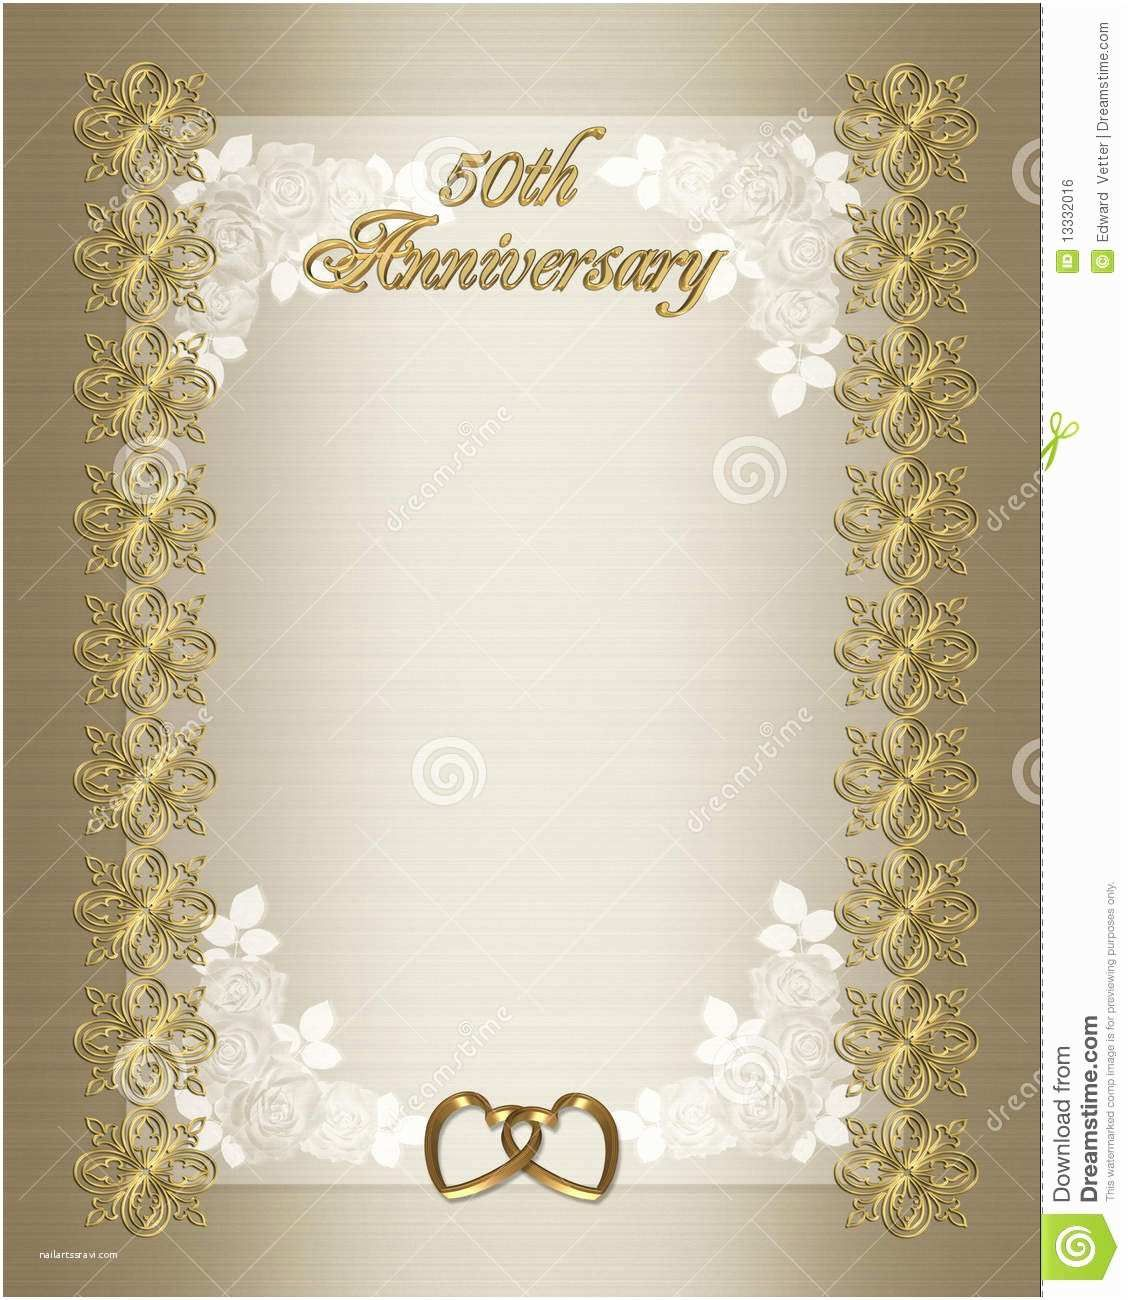 005 Remarkable 50th Anniversary Invitation Template Sample  Templates Wedding Free Download GoldenFull